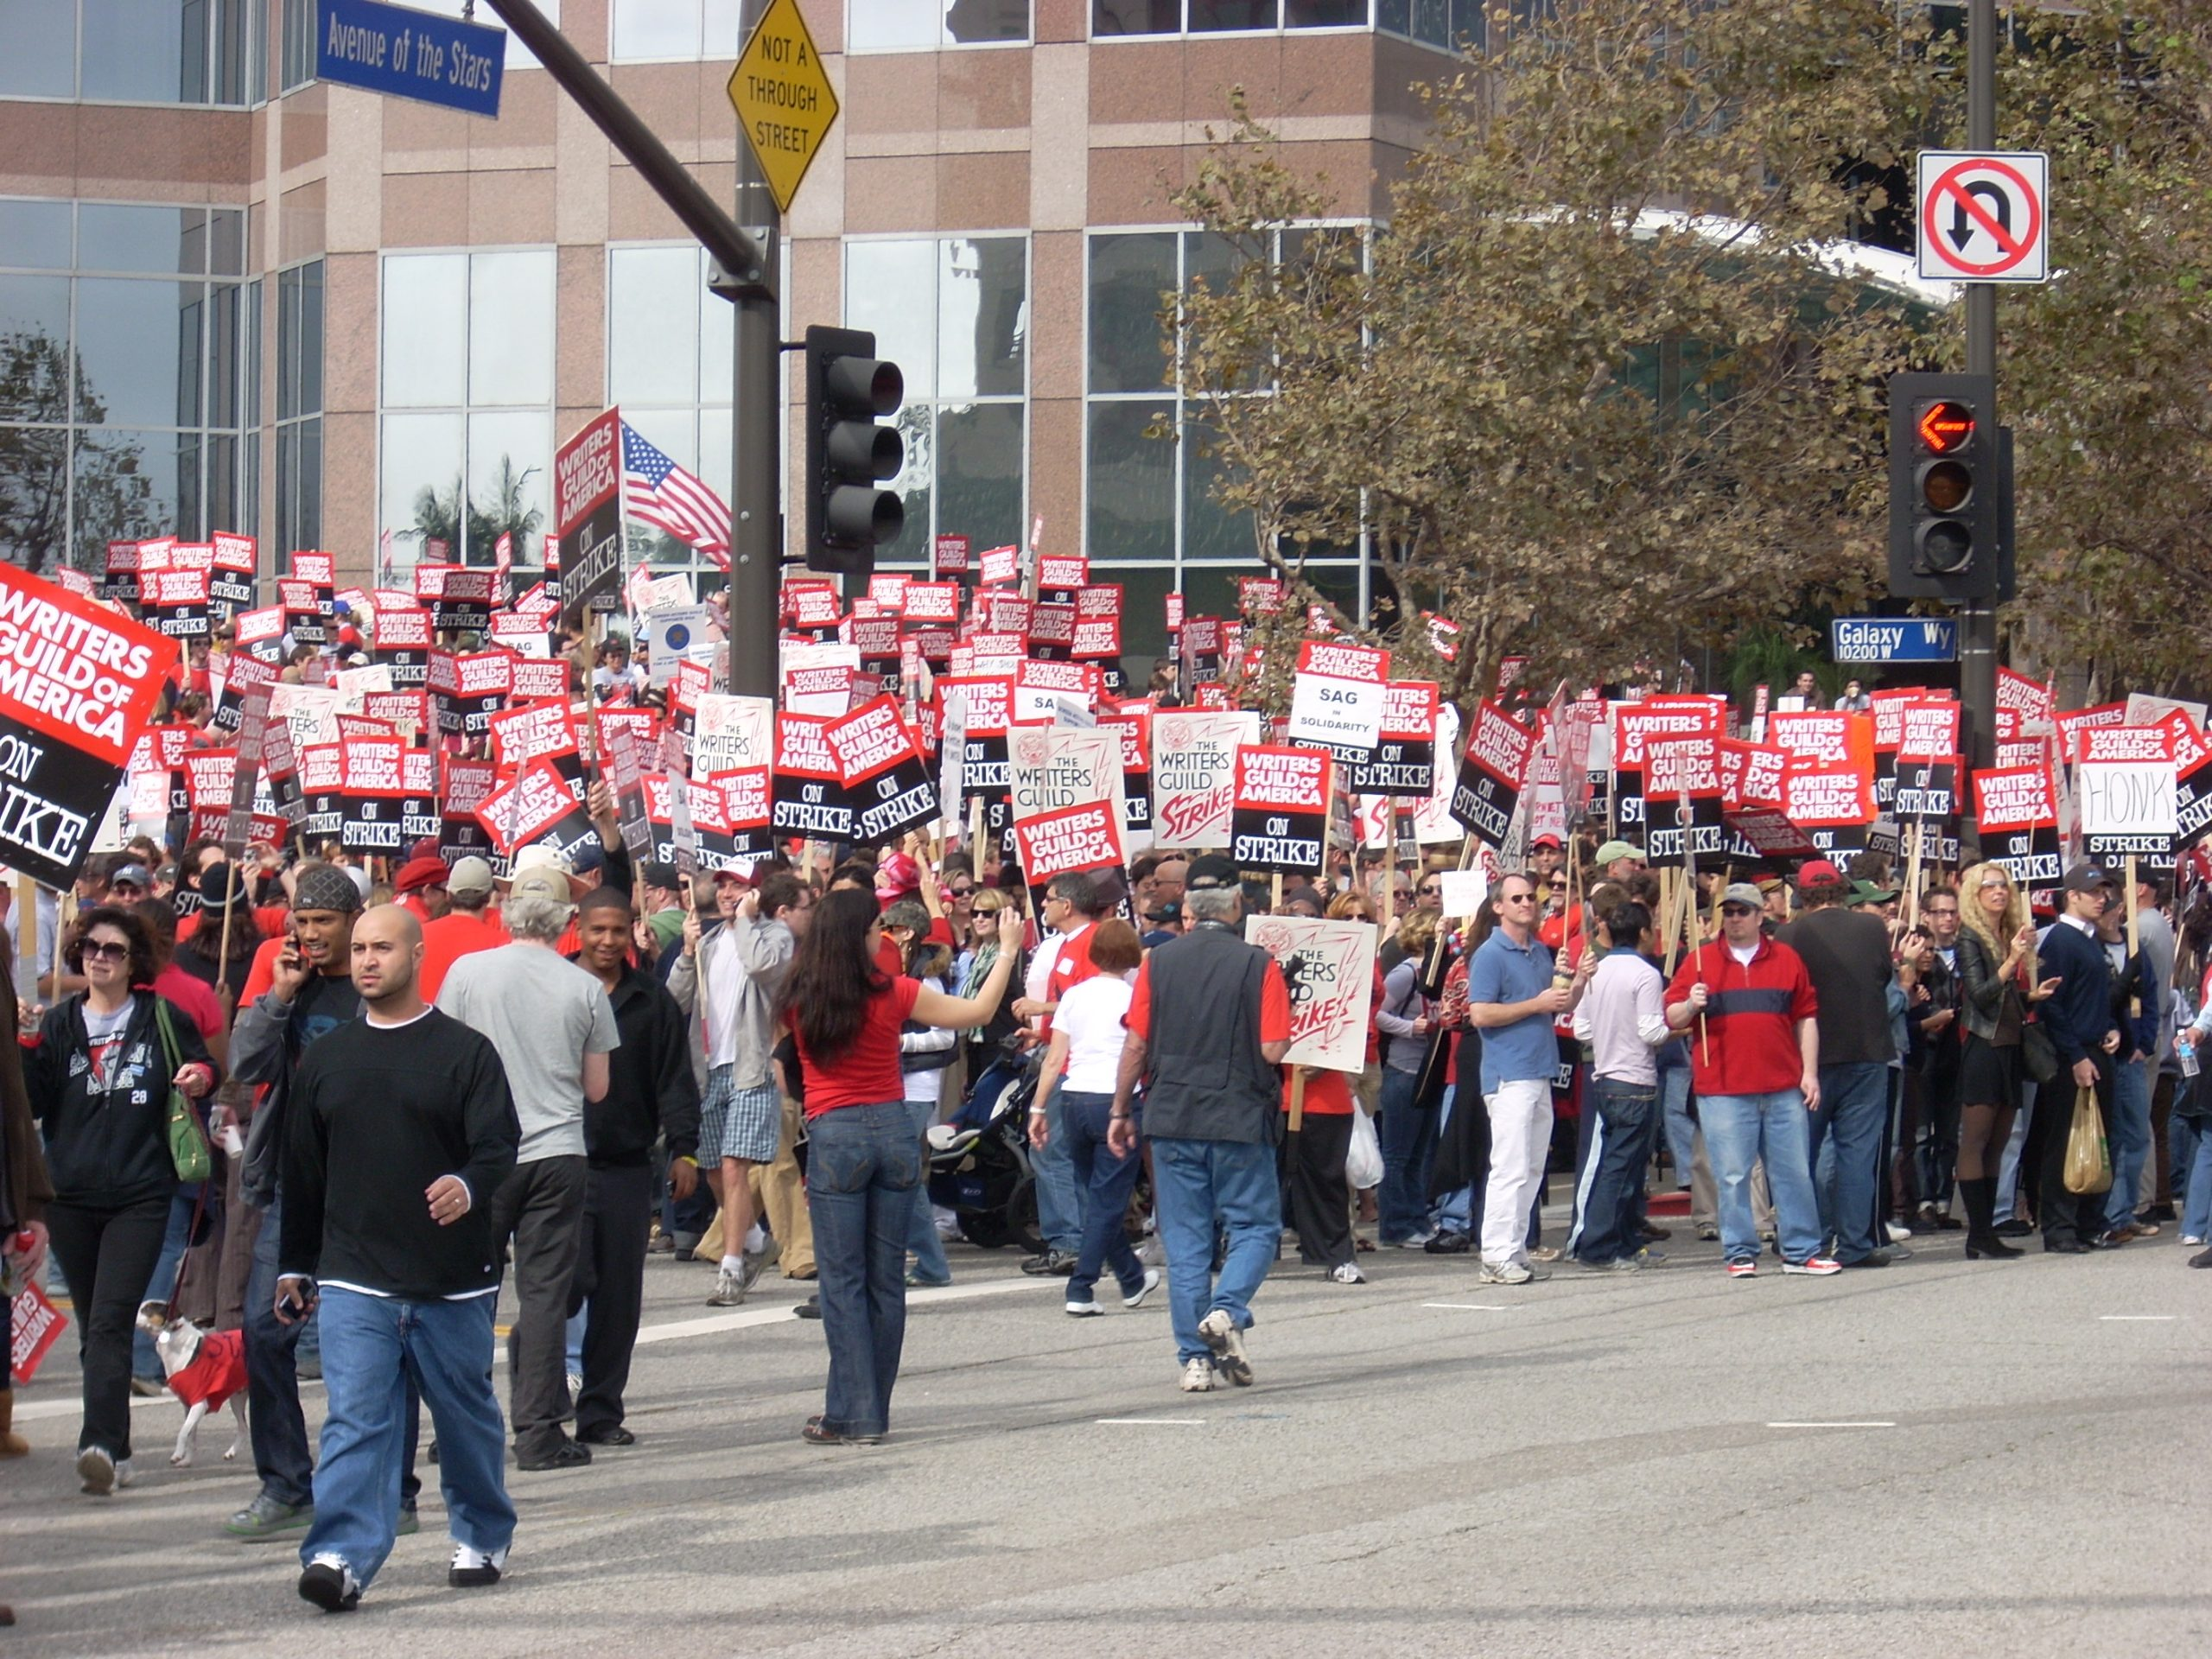 Many members of the Writers Guild of America on strike.